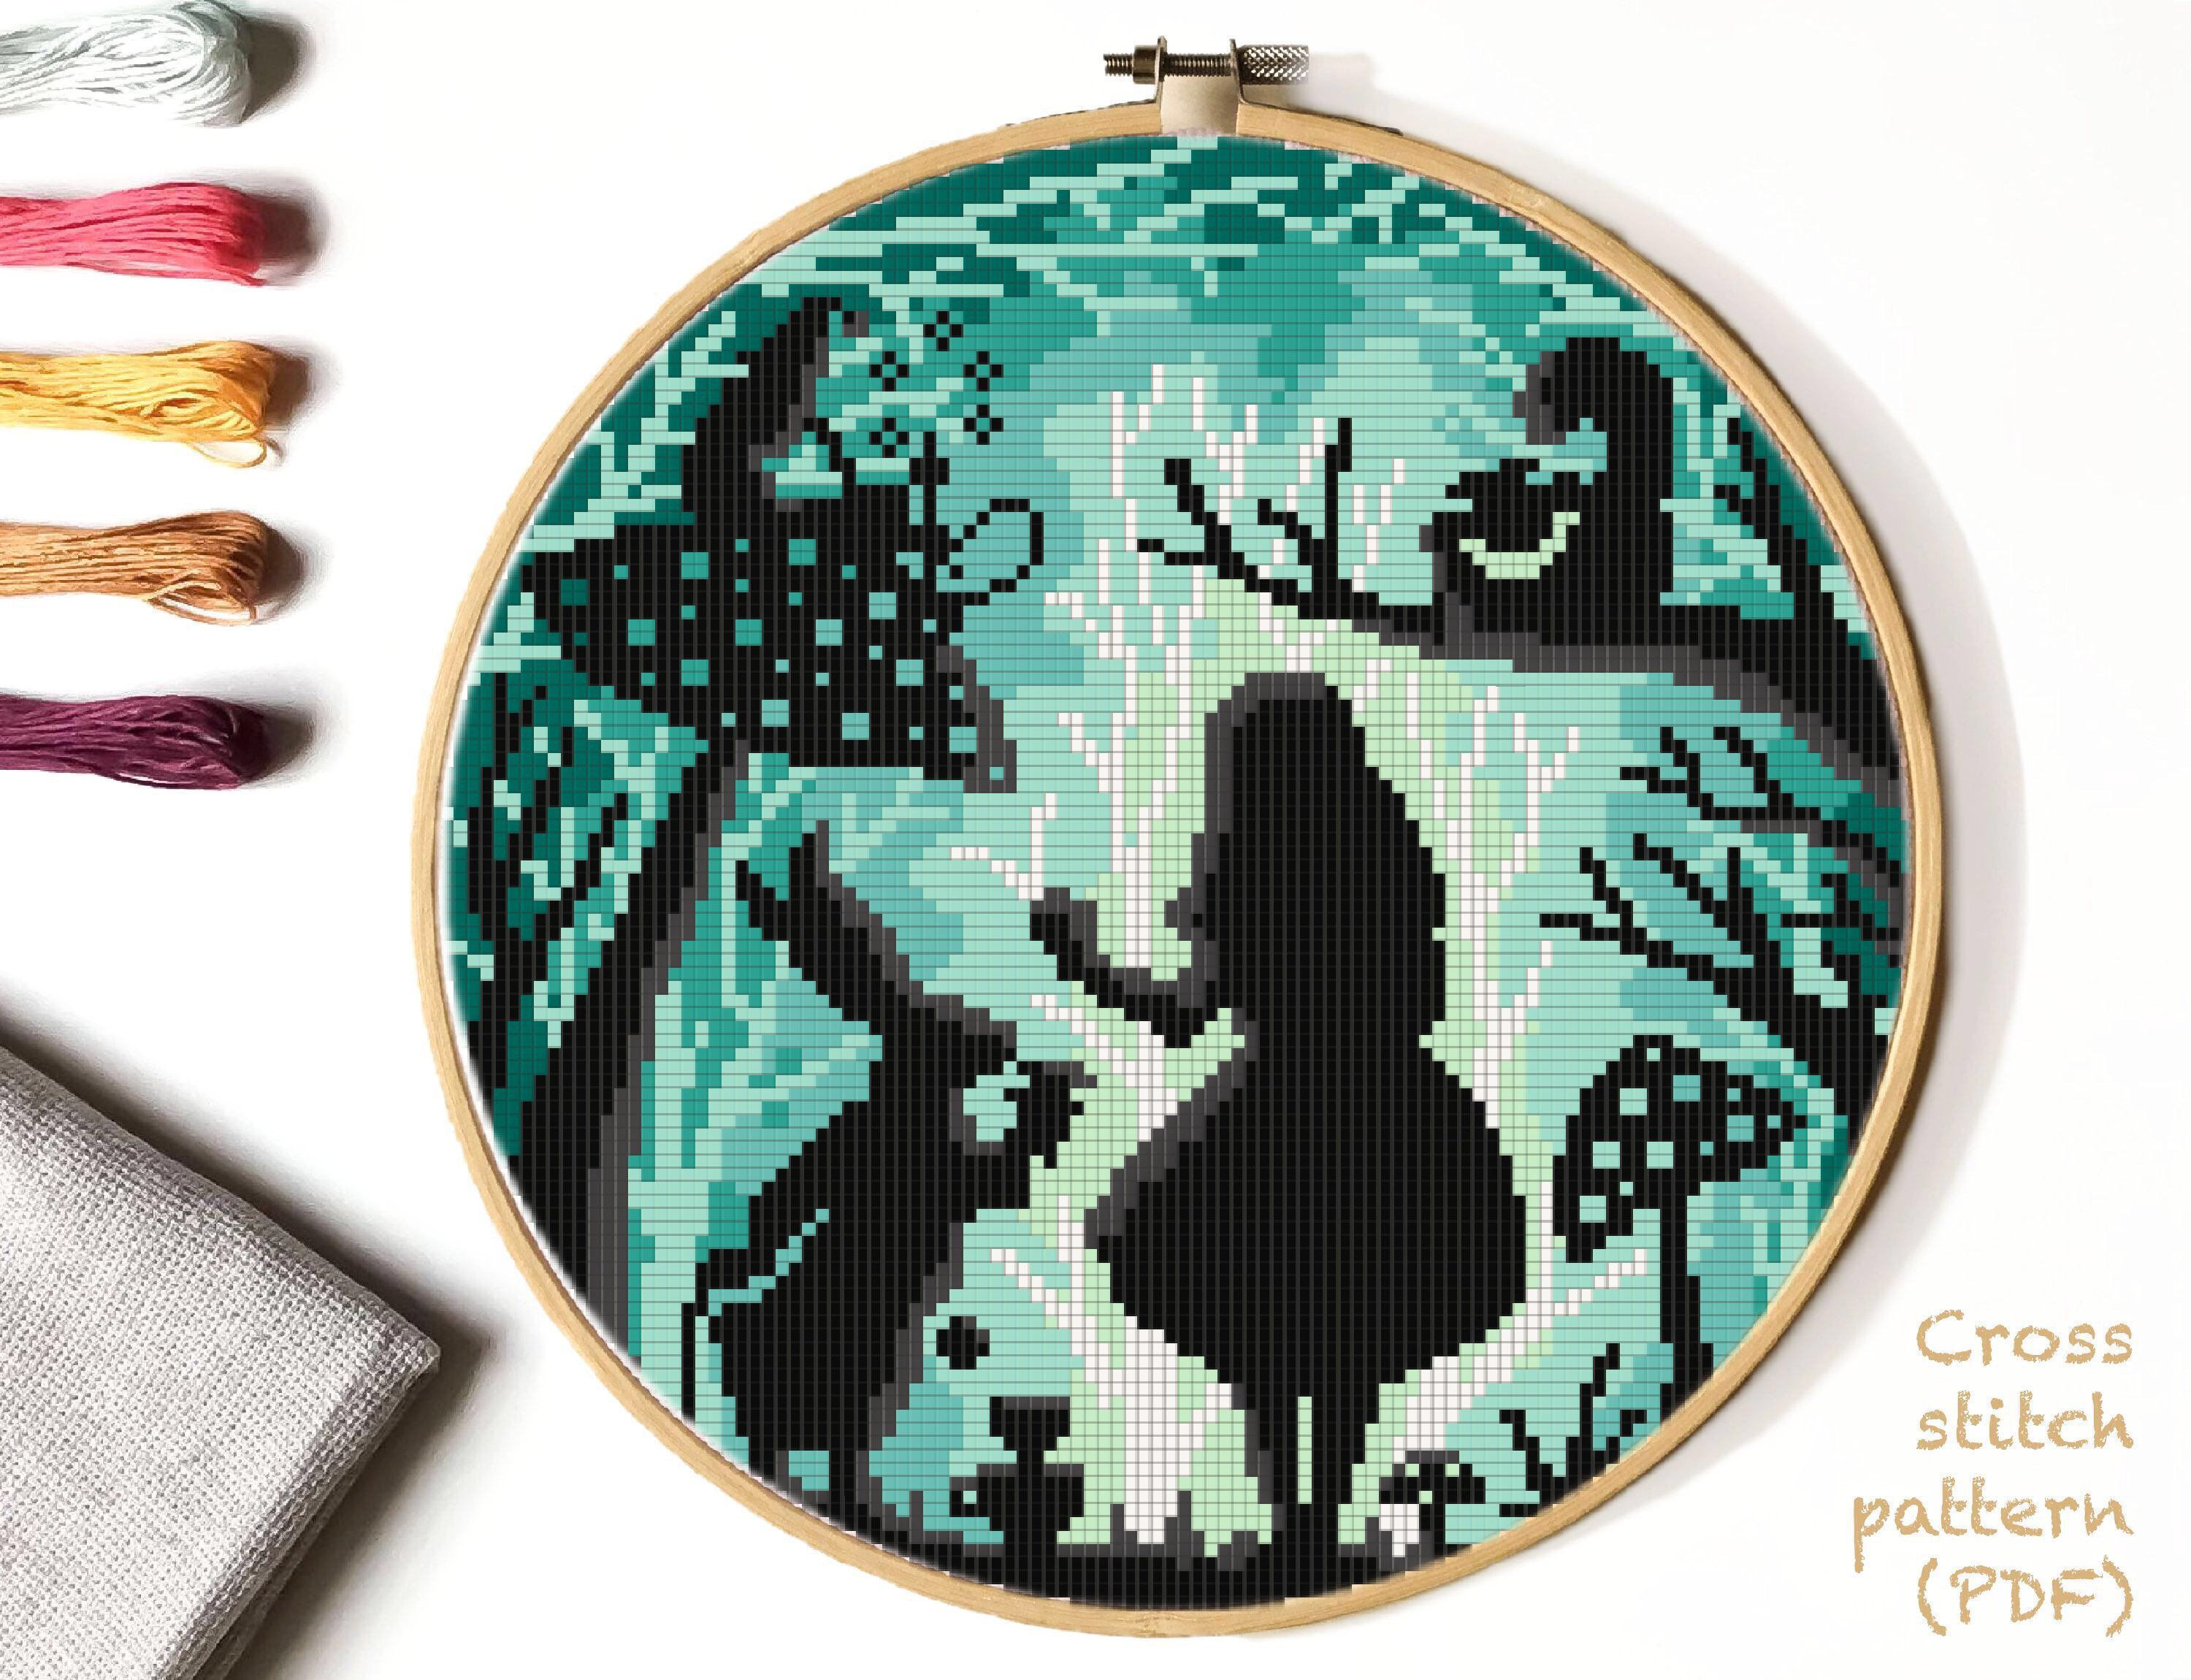 Photo of Nature Cross Stitch Pattern, easy counted cross stitch chart, landscape, fairy tale, animals cross stitch, hoop art, embroidery, instant PDF